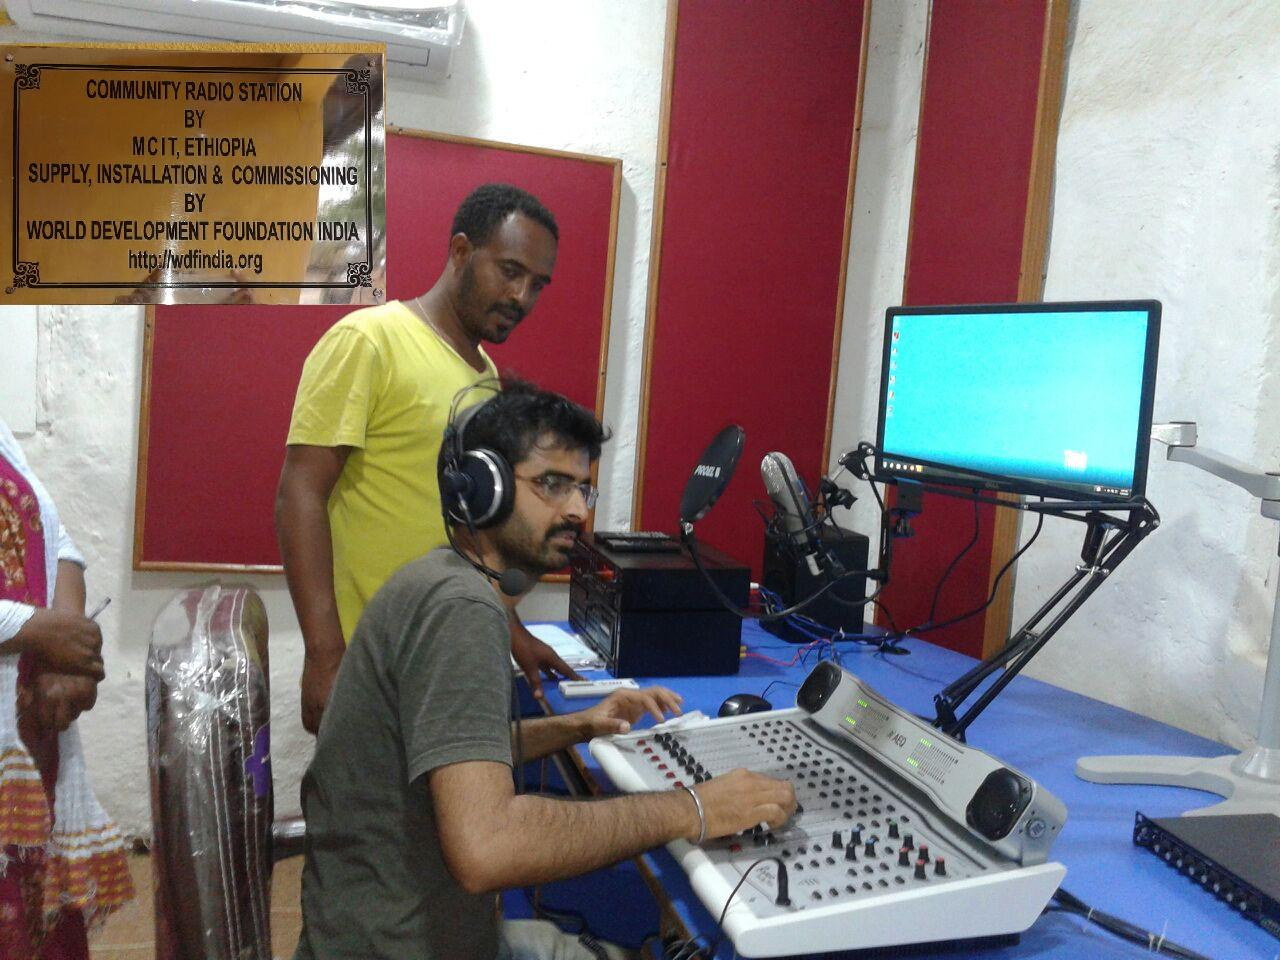 New community radio station in Ari, Ethiopia